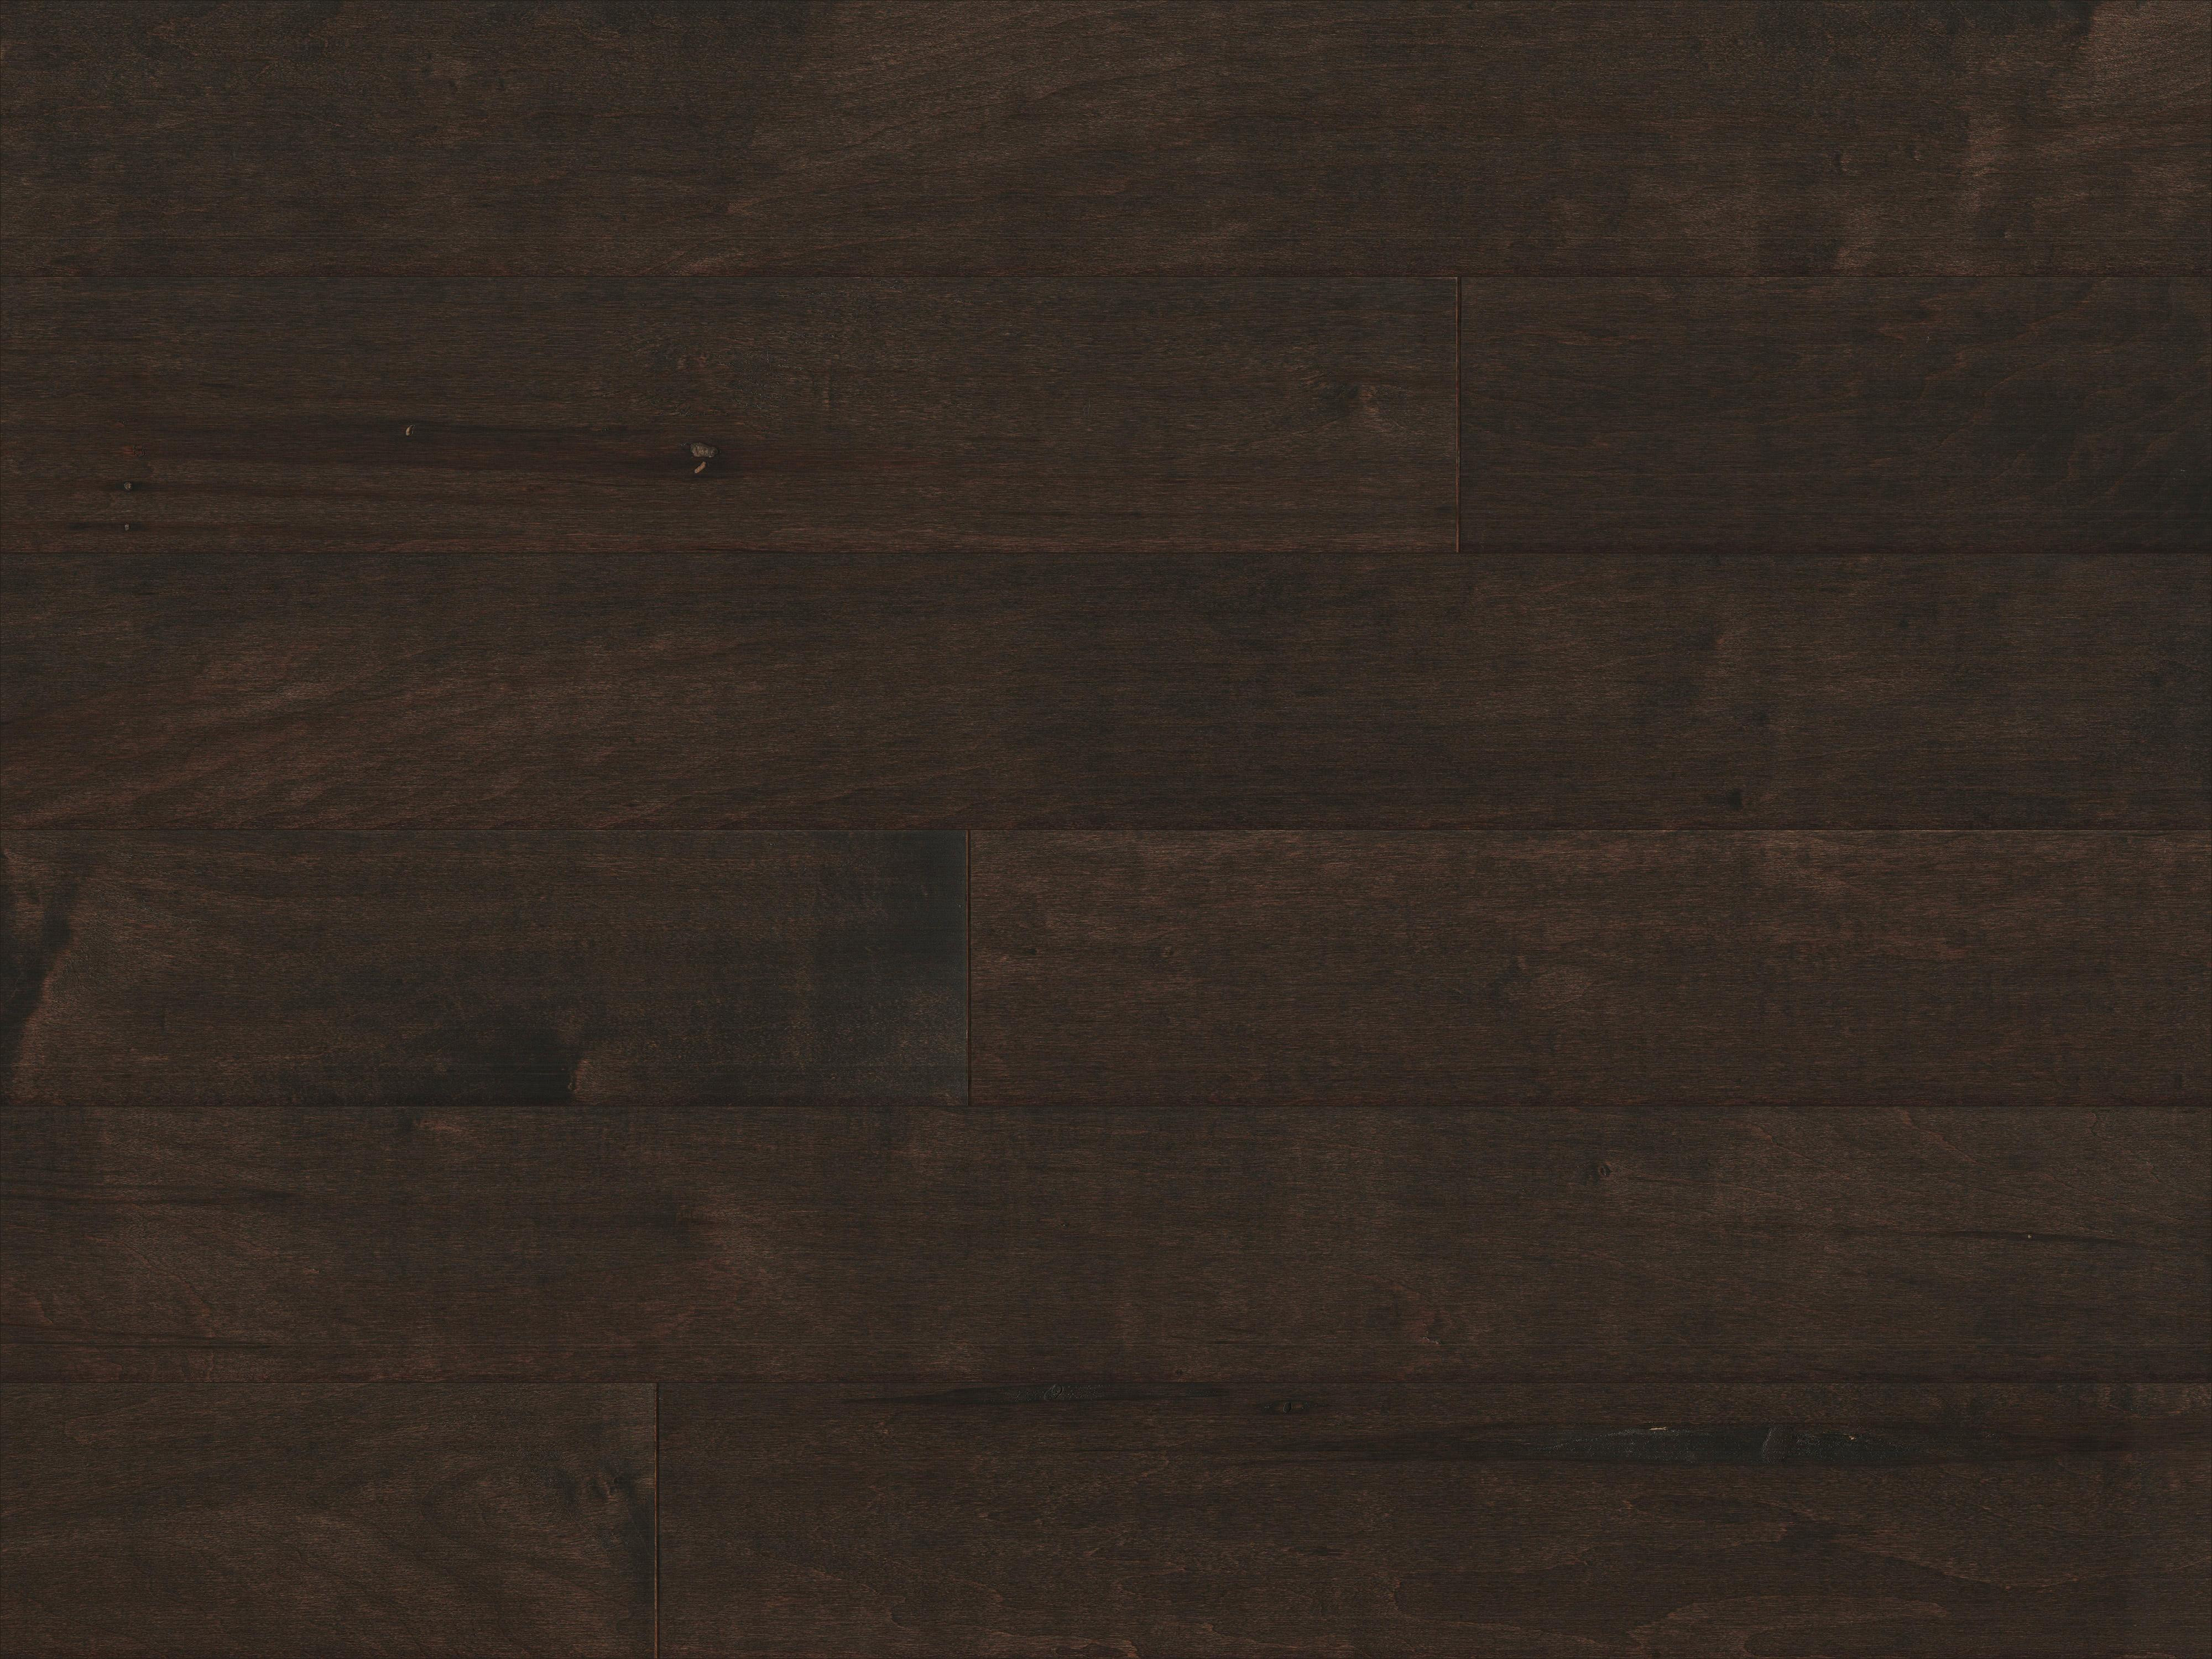 12 Trendy 8 Wide Plank Hardwood Flooring 2021 free download 8 wide plank hardwood flooring of mullican ridgecrest maple cappuccino 1 2 thick 5 wide engineered with regard to mullican ridgecrest maple cappuccino 1 2 thick 5 wide engineered hardwood fl